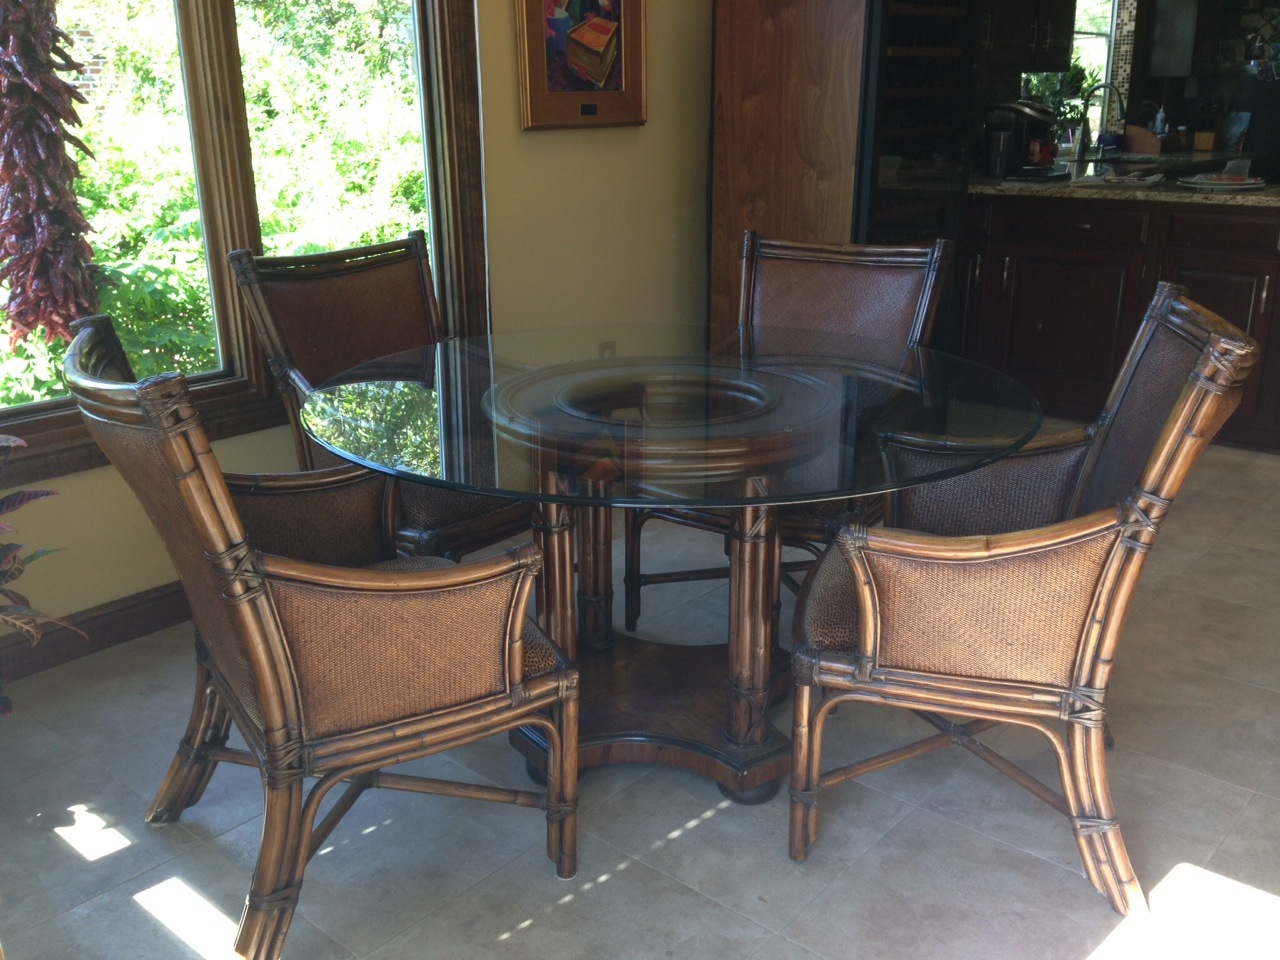 Thomasville Dining Room Chairs Rebecca Stisser Reorganization Redesign 5 Piece Dining Room